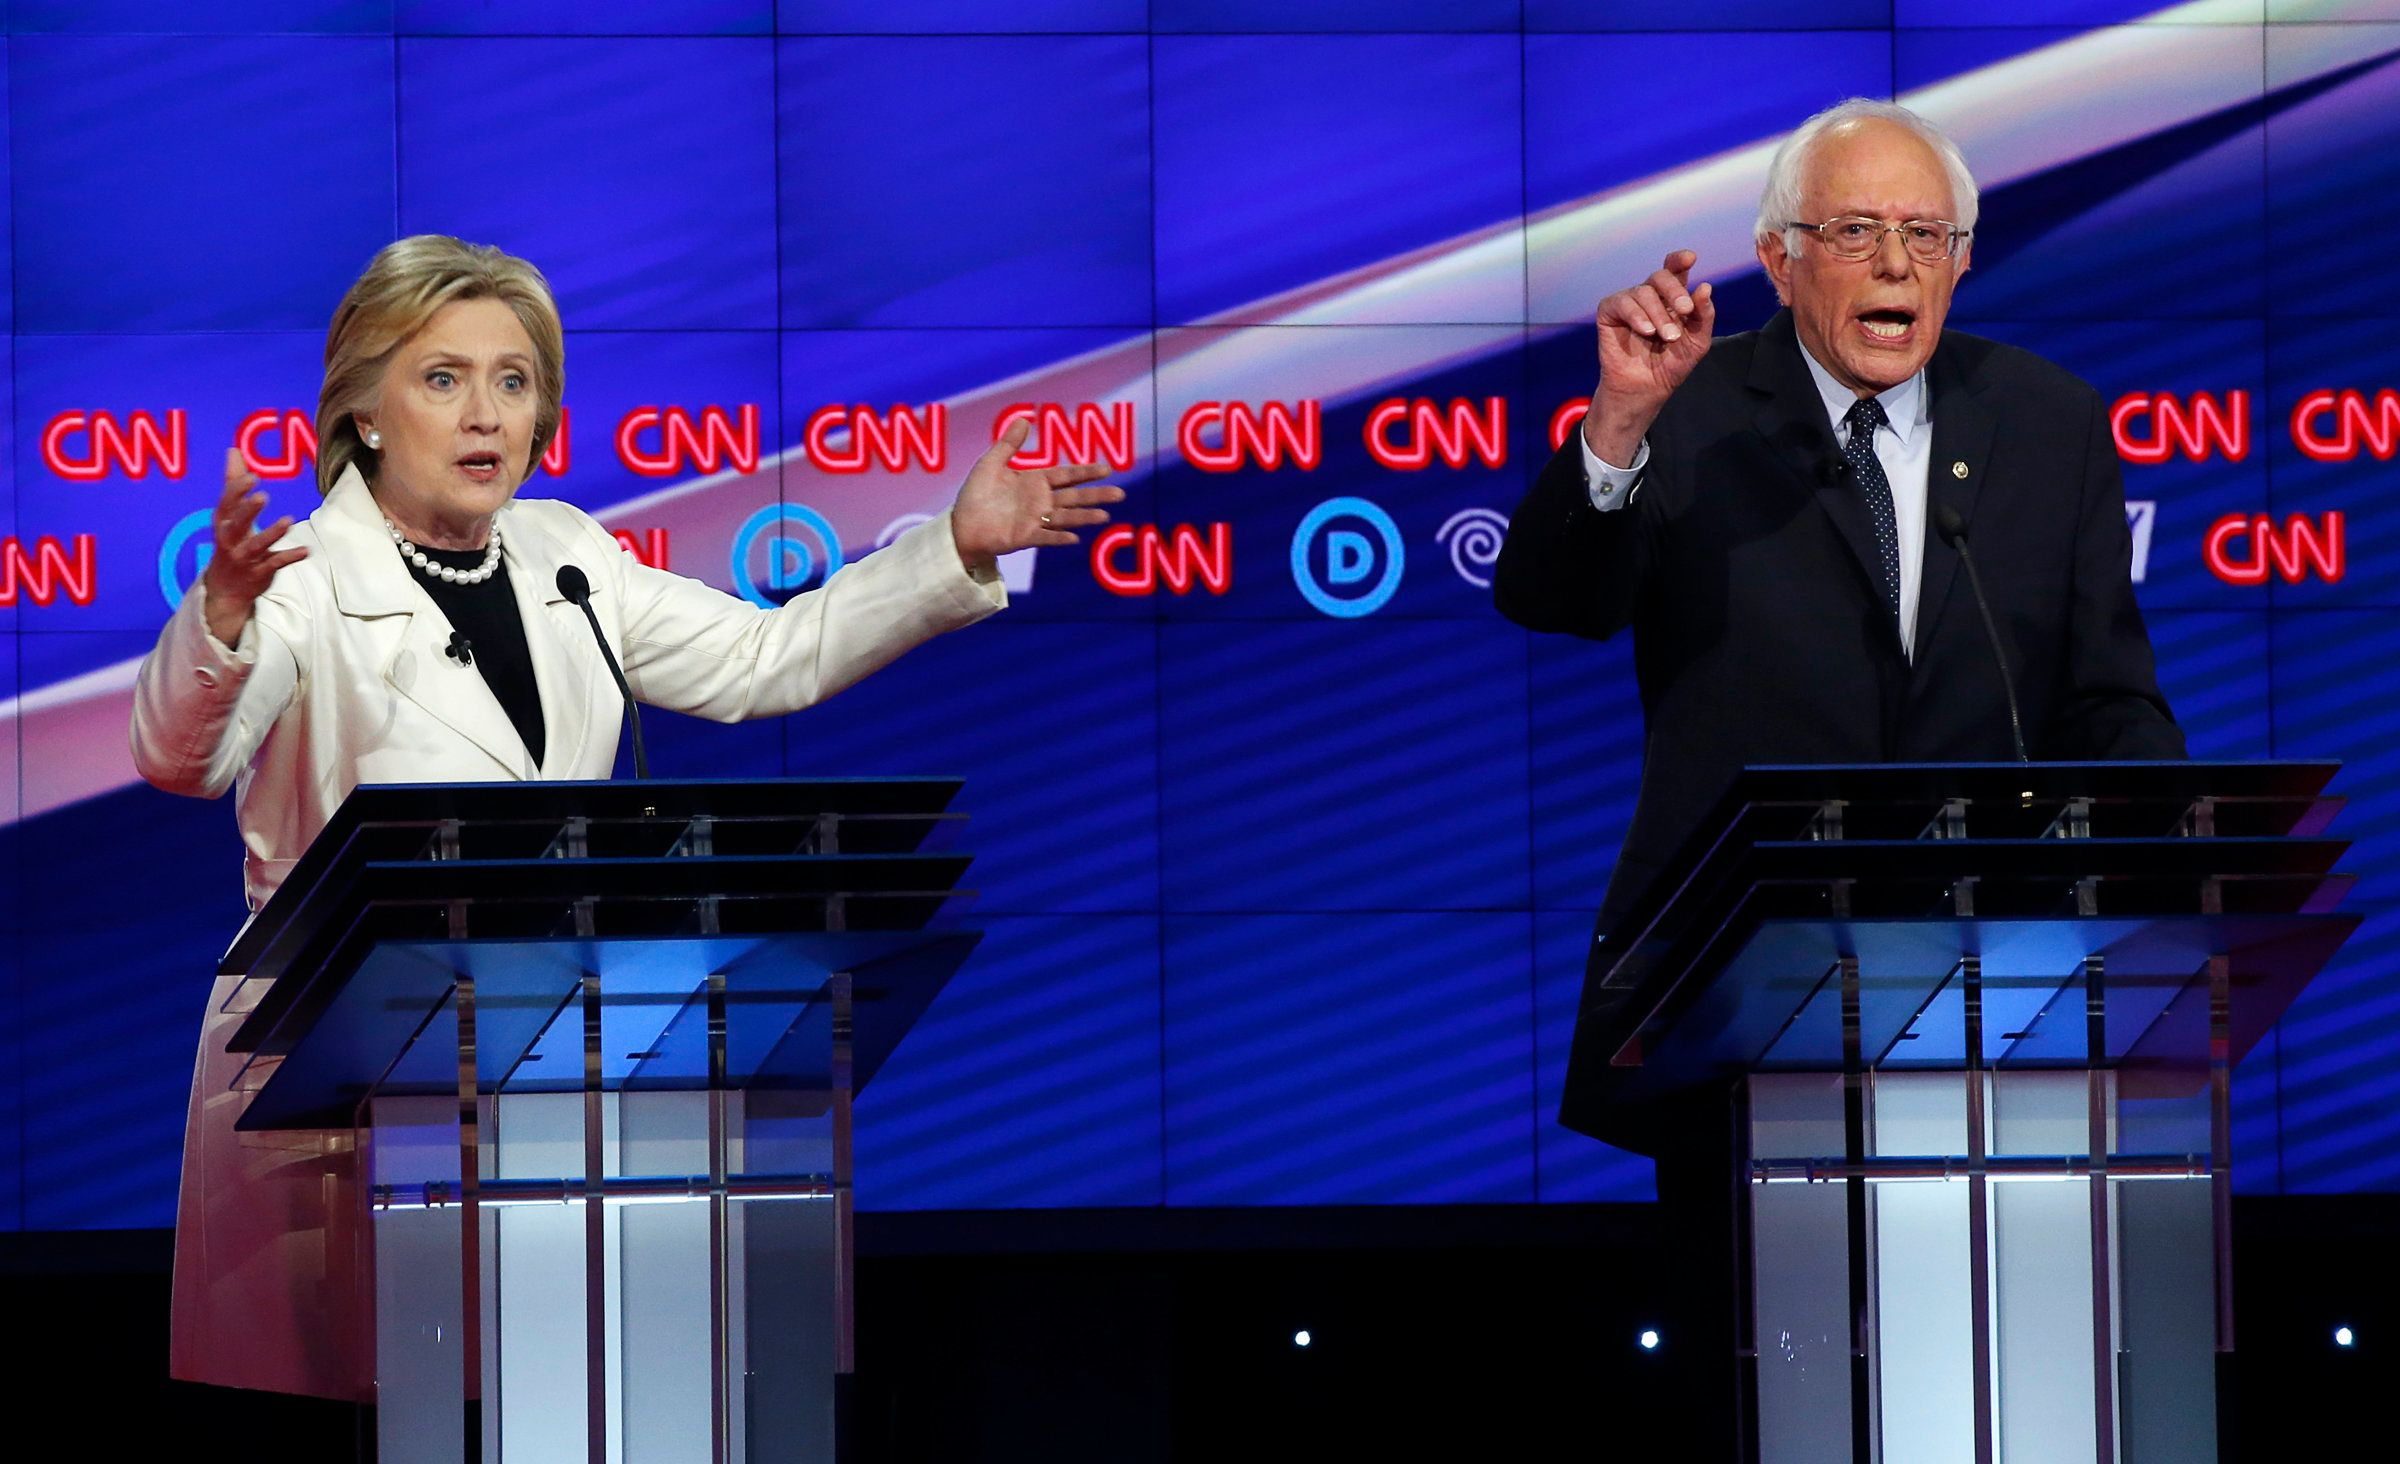 The affordable housing crisis is affecting millions of Americans, but candidates have rarely addressedthe issue during